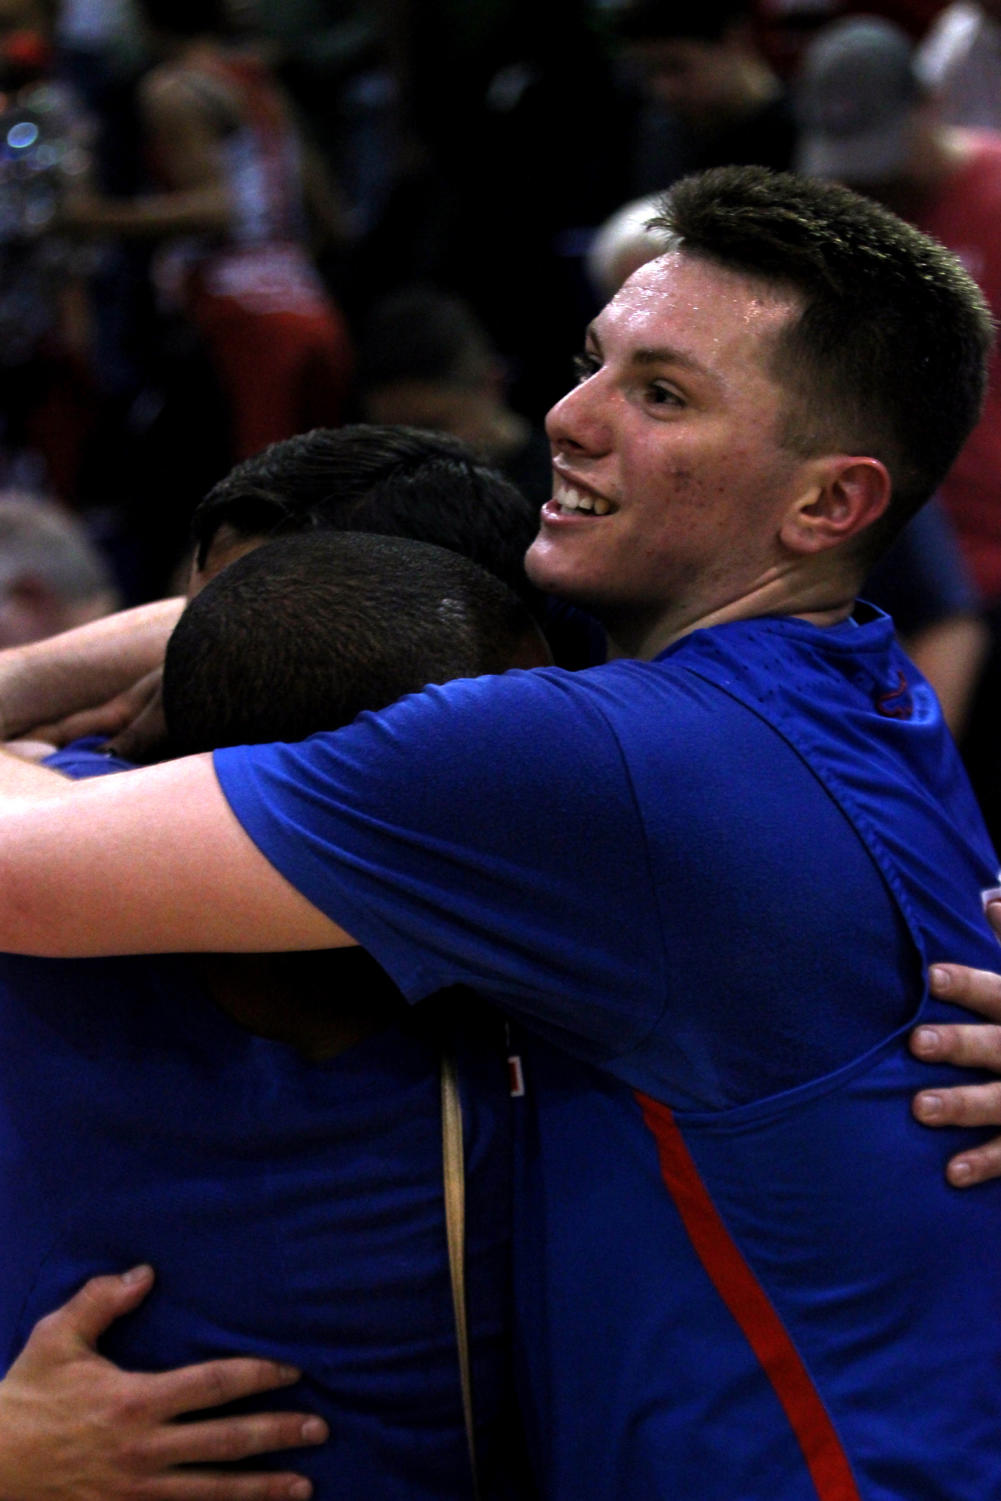 Senior Point Guard Luke Pluymen hugs his teammates to celebrate the 58-57 win against Wagner High School.